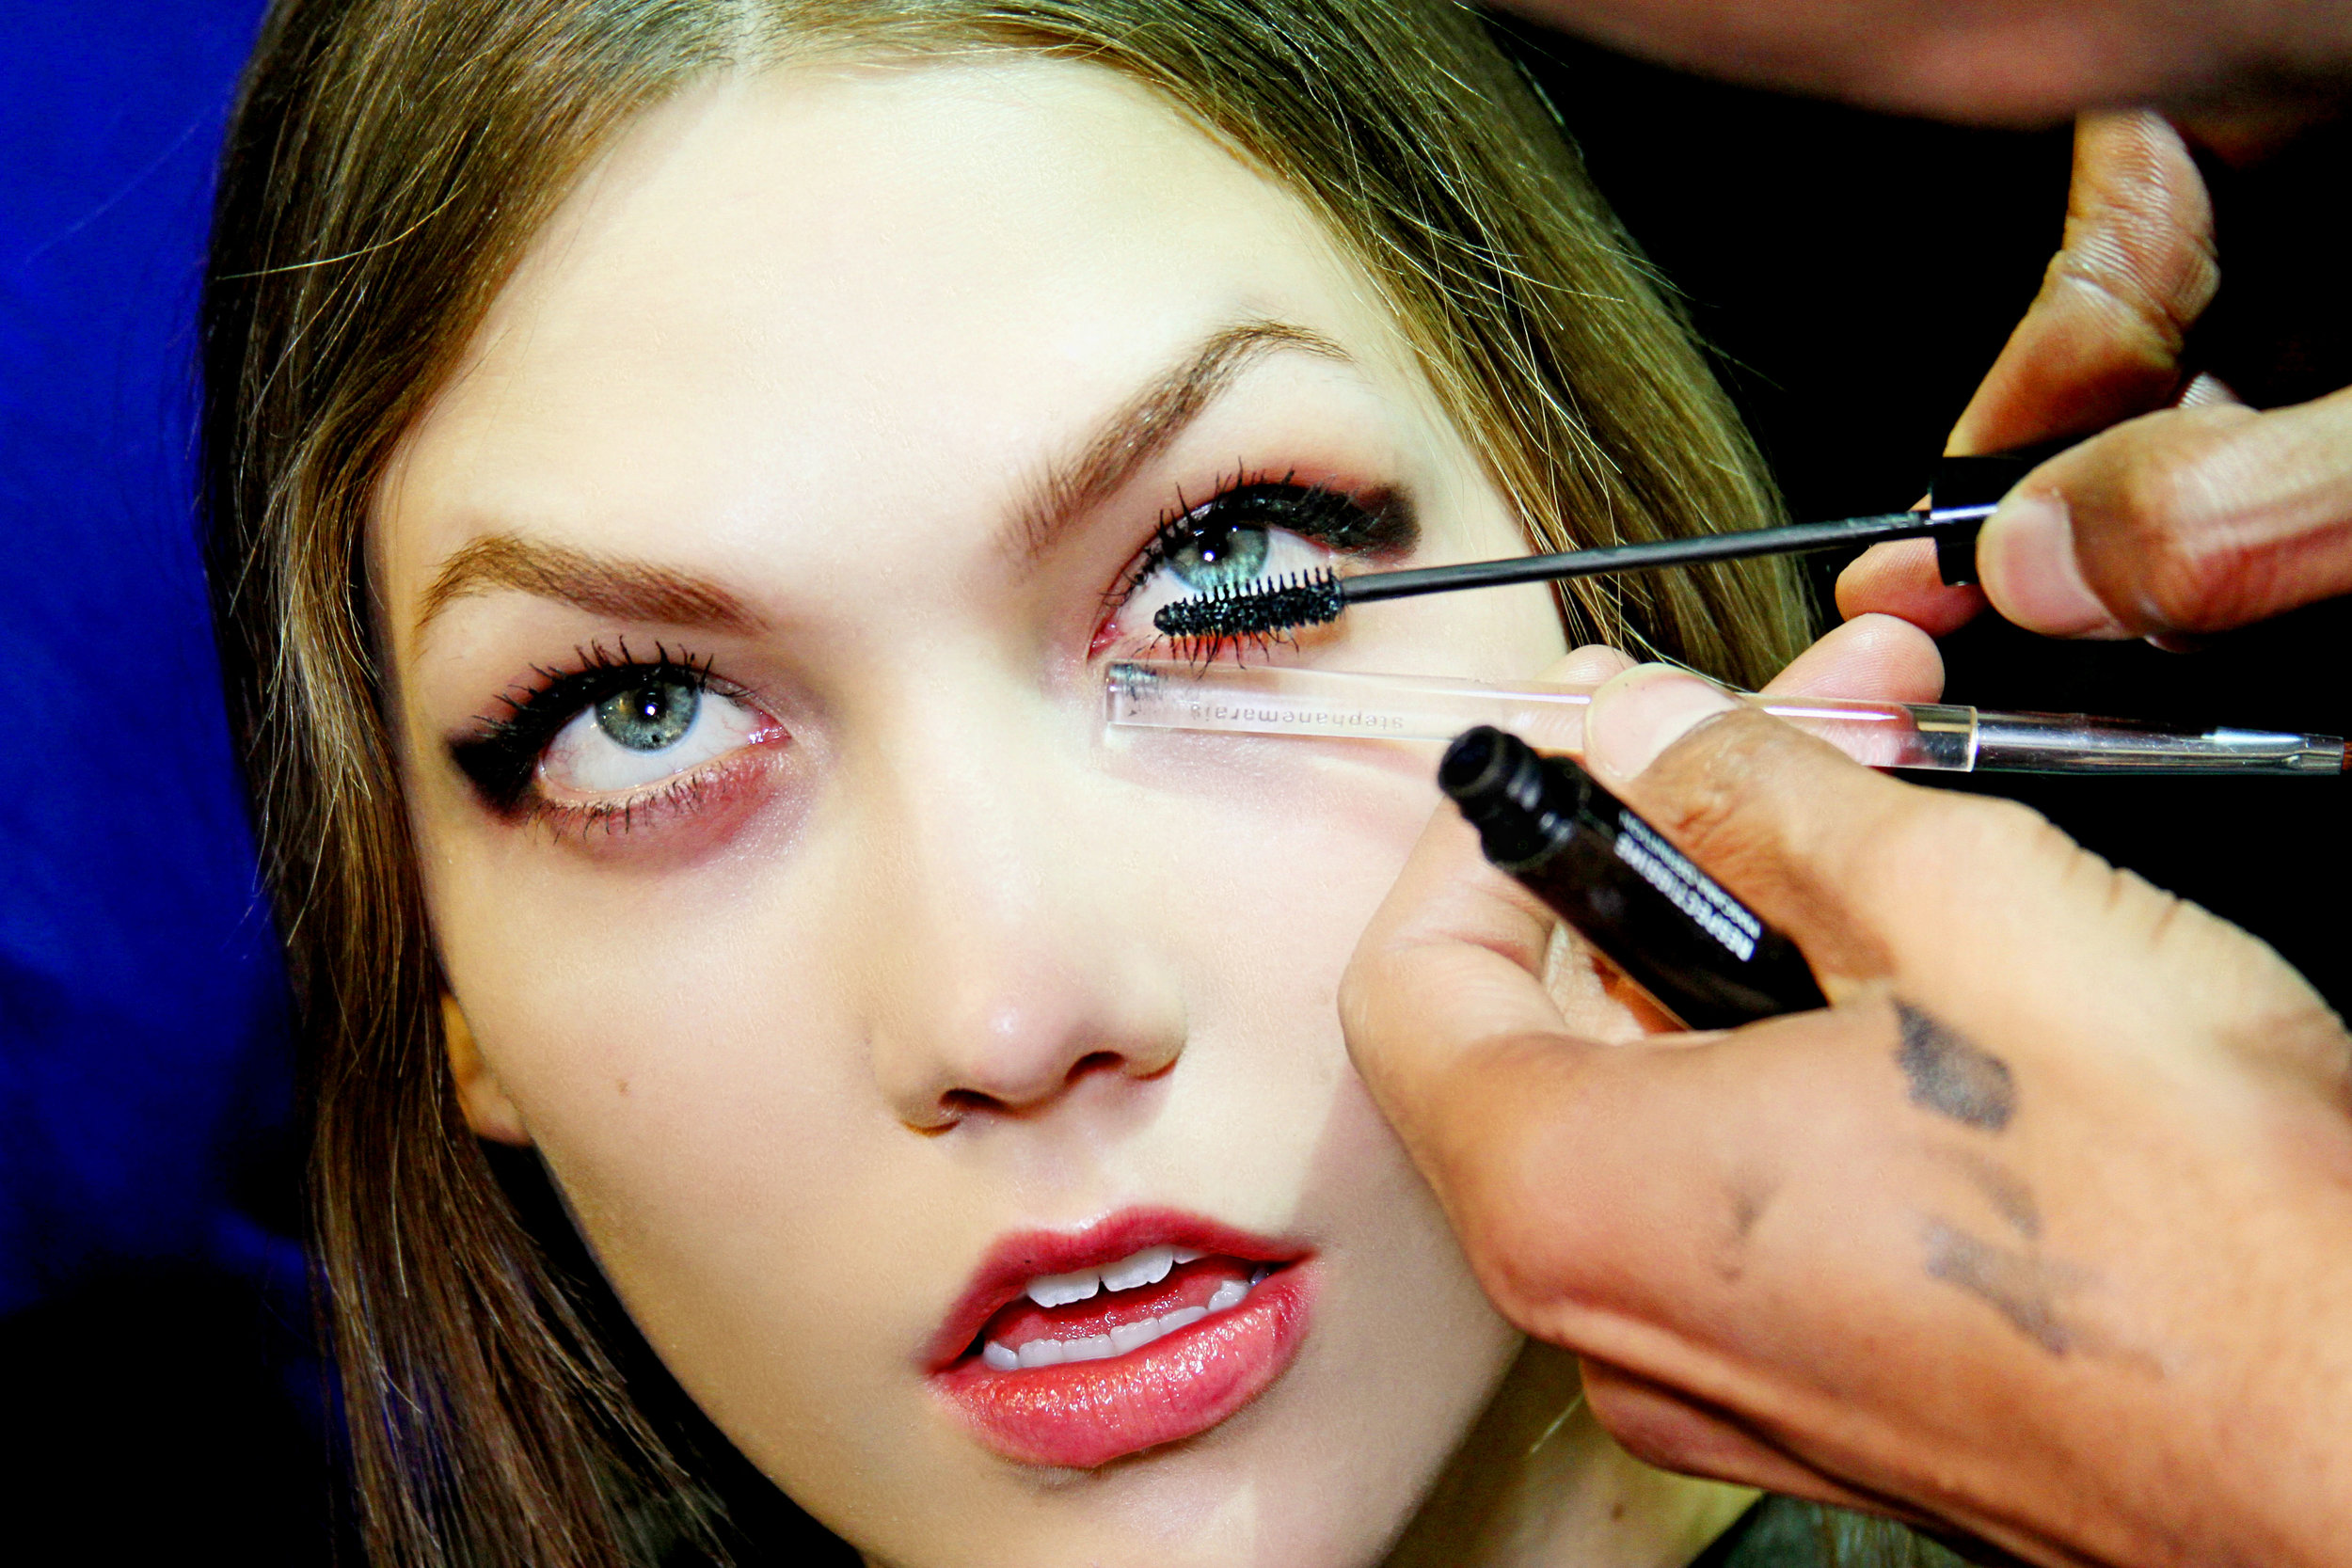 Karlie Kloss backstage at Lanvin_img_0218A.jpg